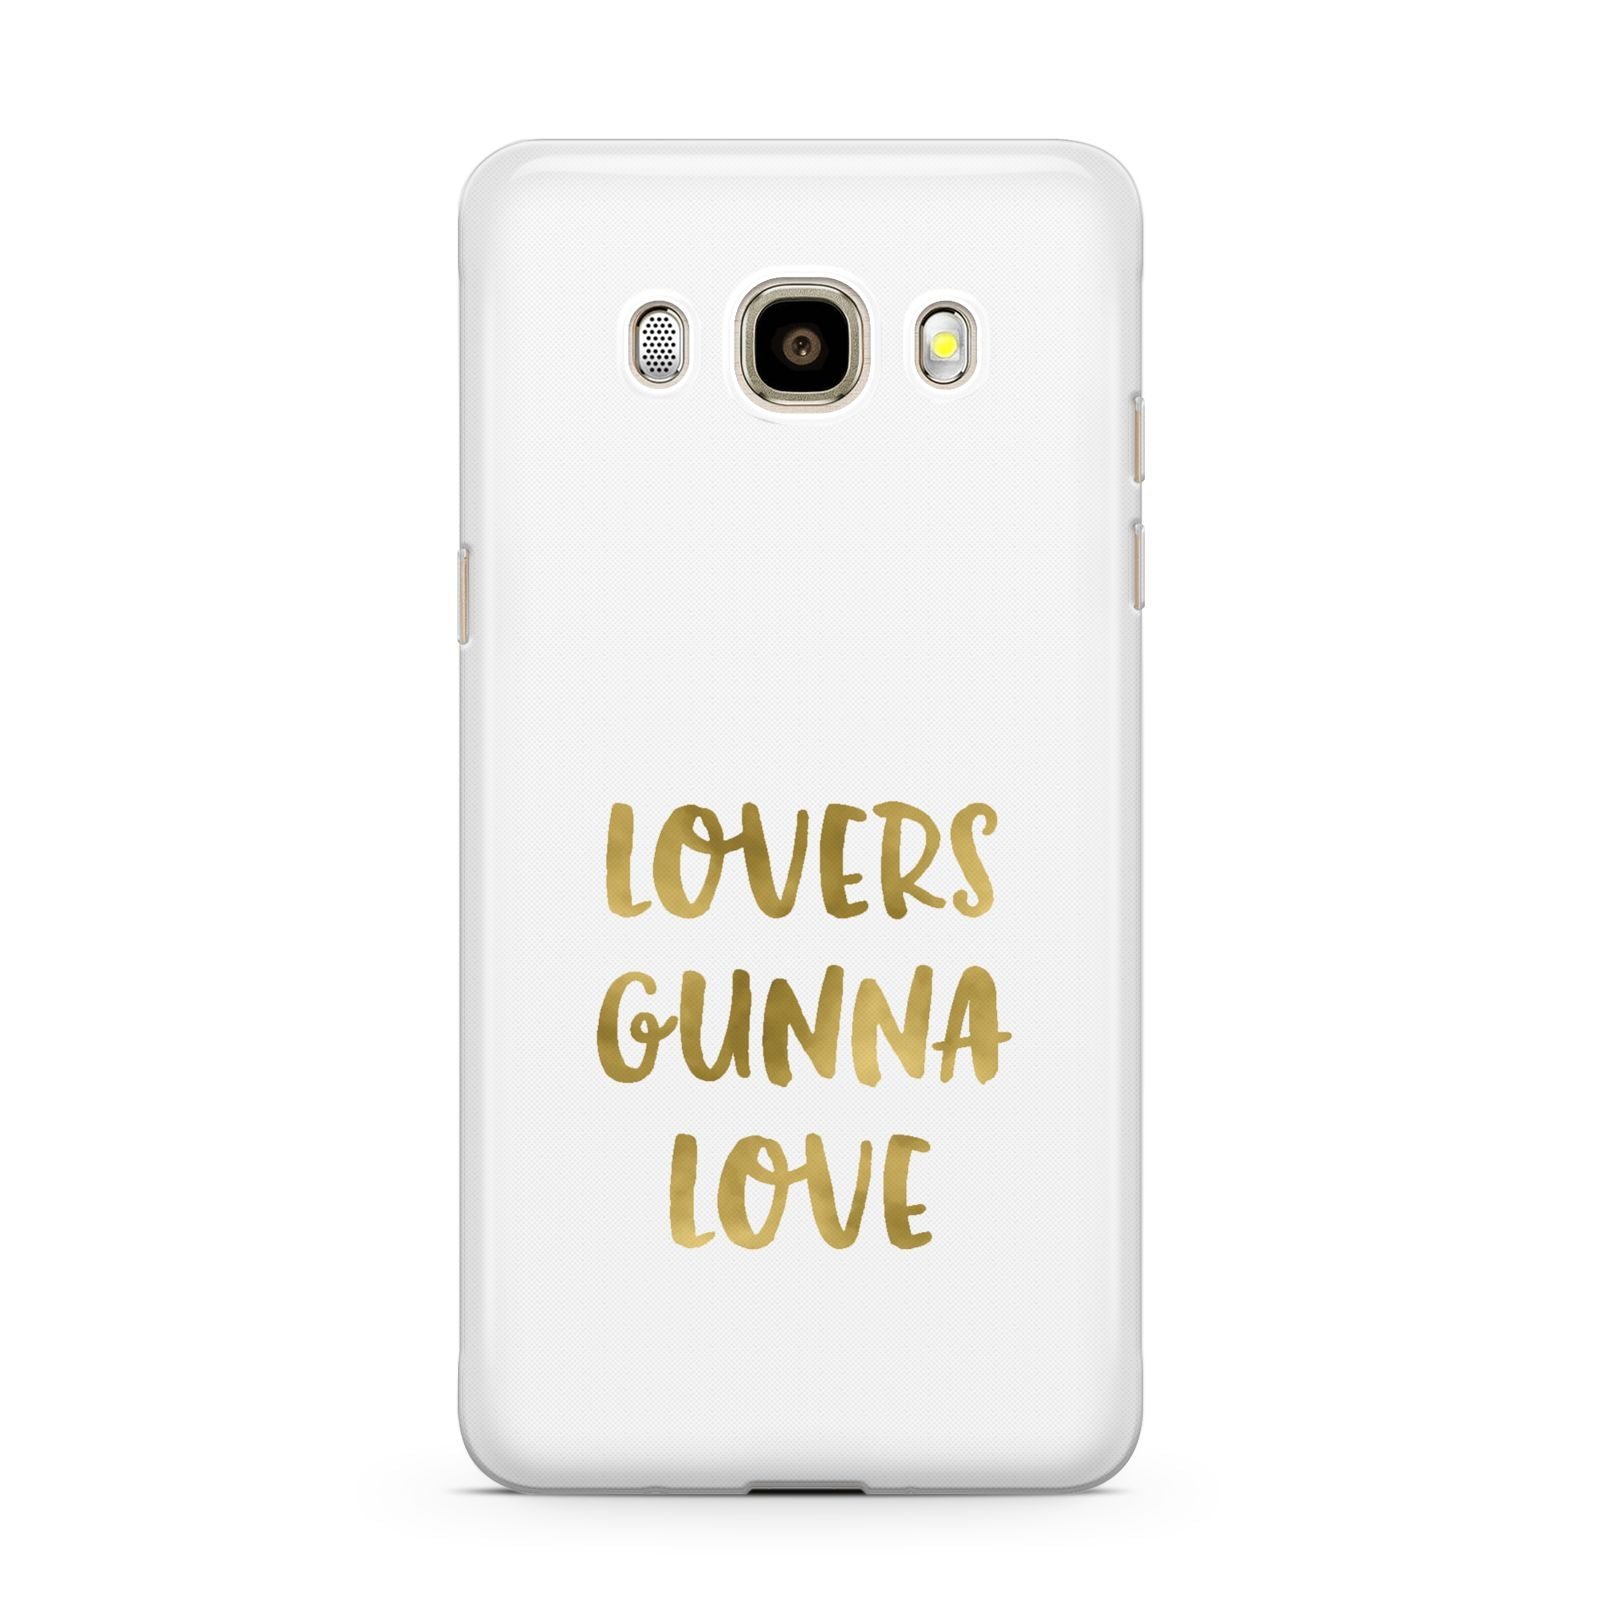 Lovers Gunna Love Real Gold Foil Samsung Galaxy J7 2016 Case on gold phone